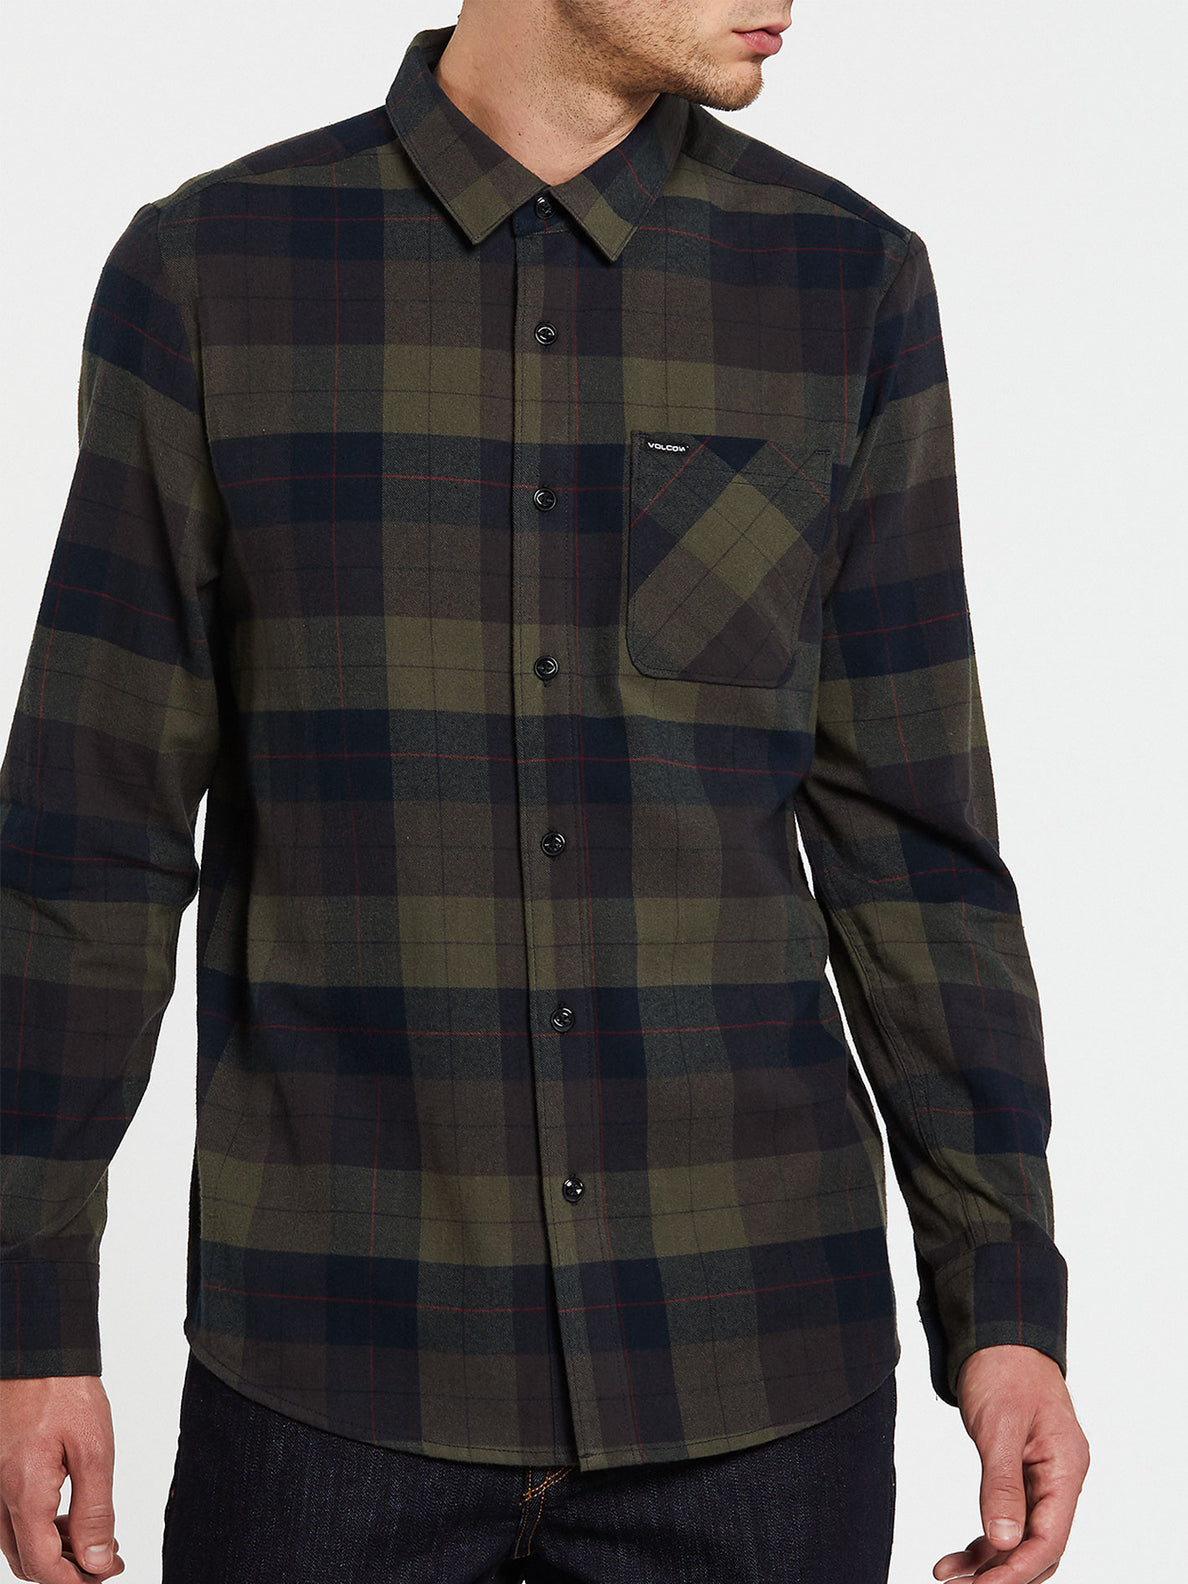 Caden Plaid Long Sleeve  Flannel - Army Green Combo (A0532005_ARC) [2]